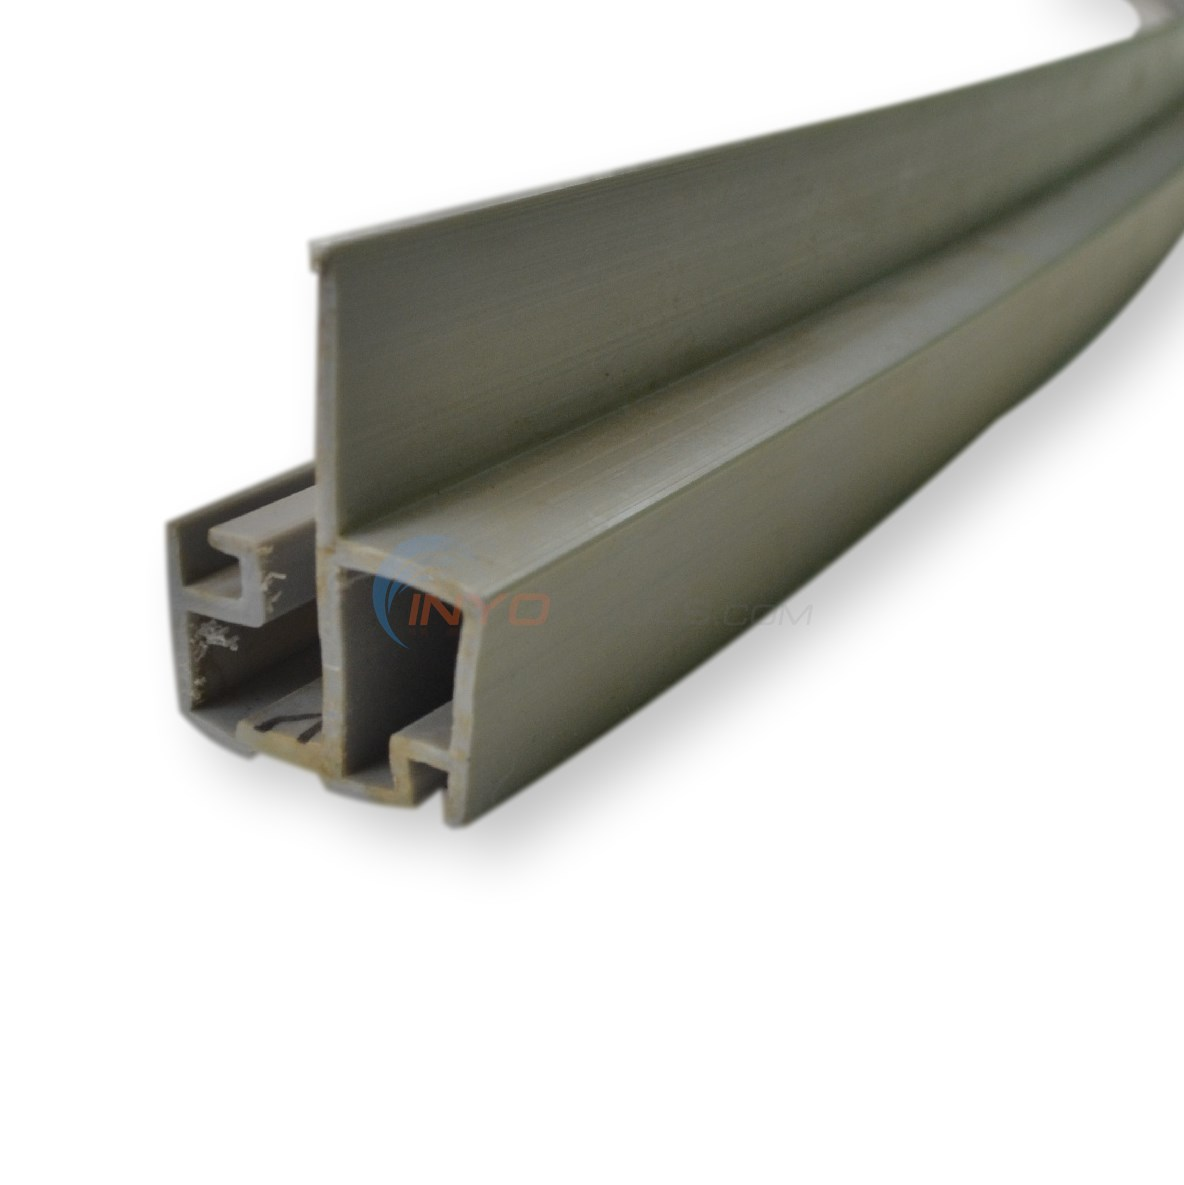 Wilbar 15' Resin Bottom Rail (Single) 1460182  For The Aruba